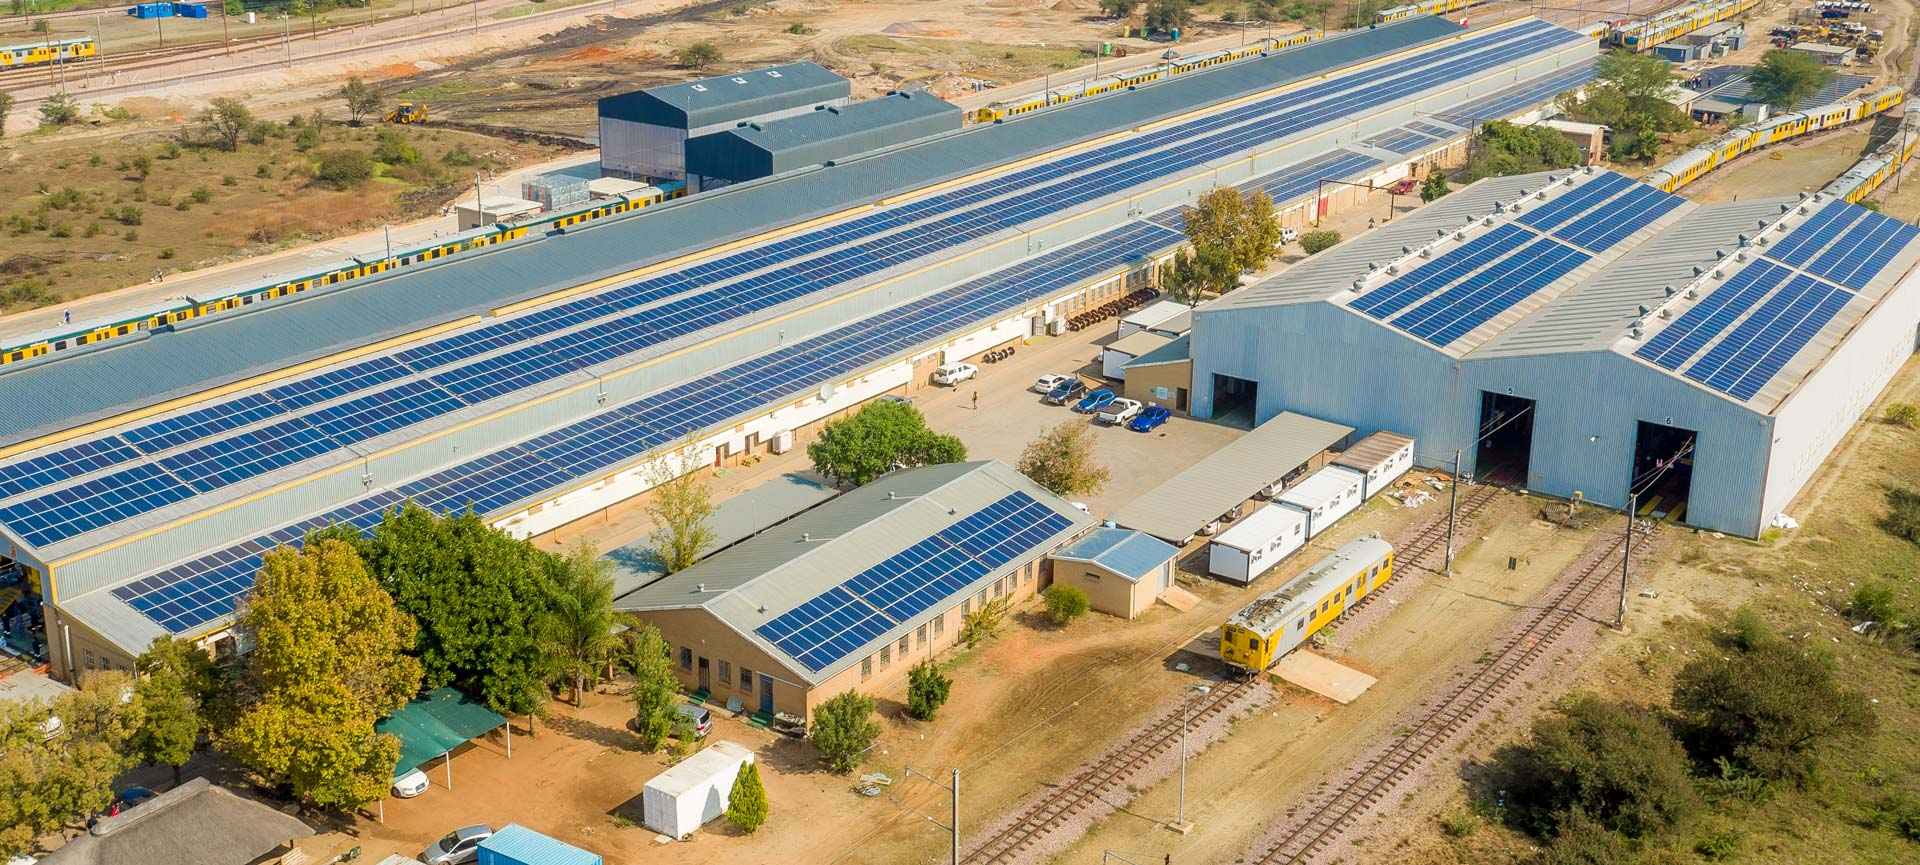 Over 25MW of solar plants installed across South Africa